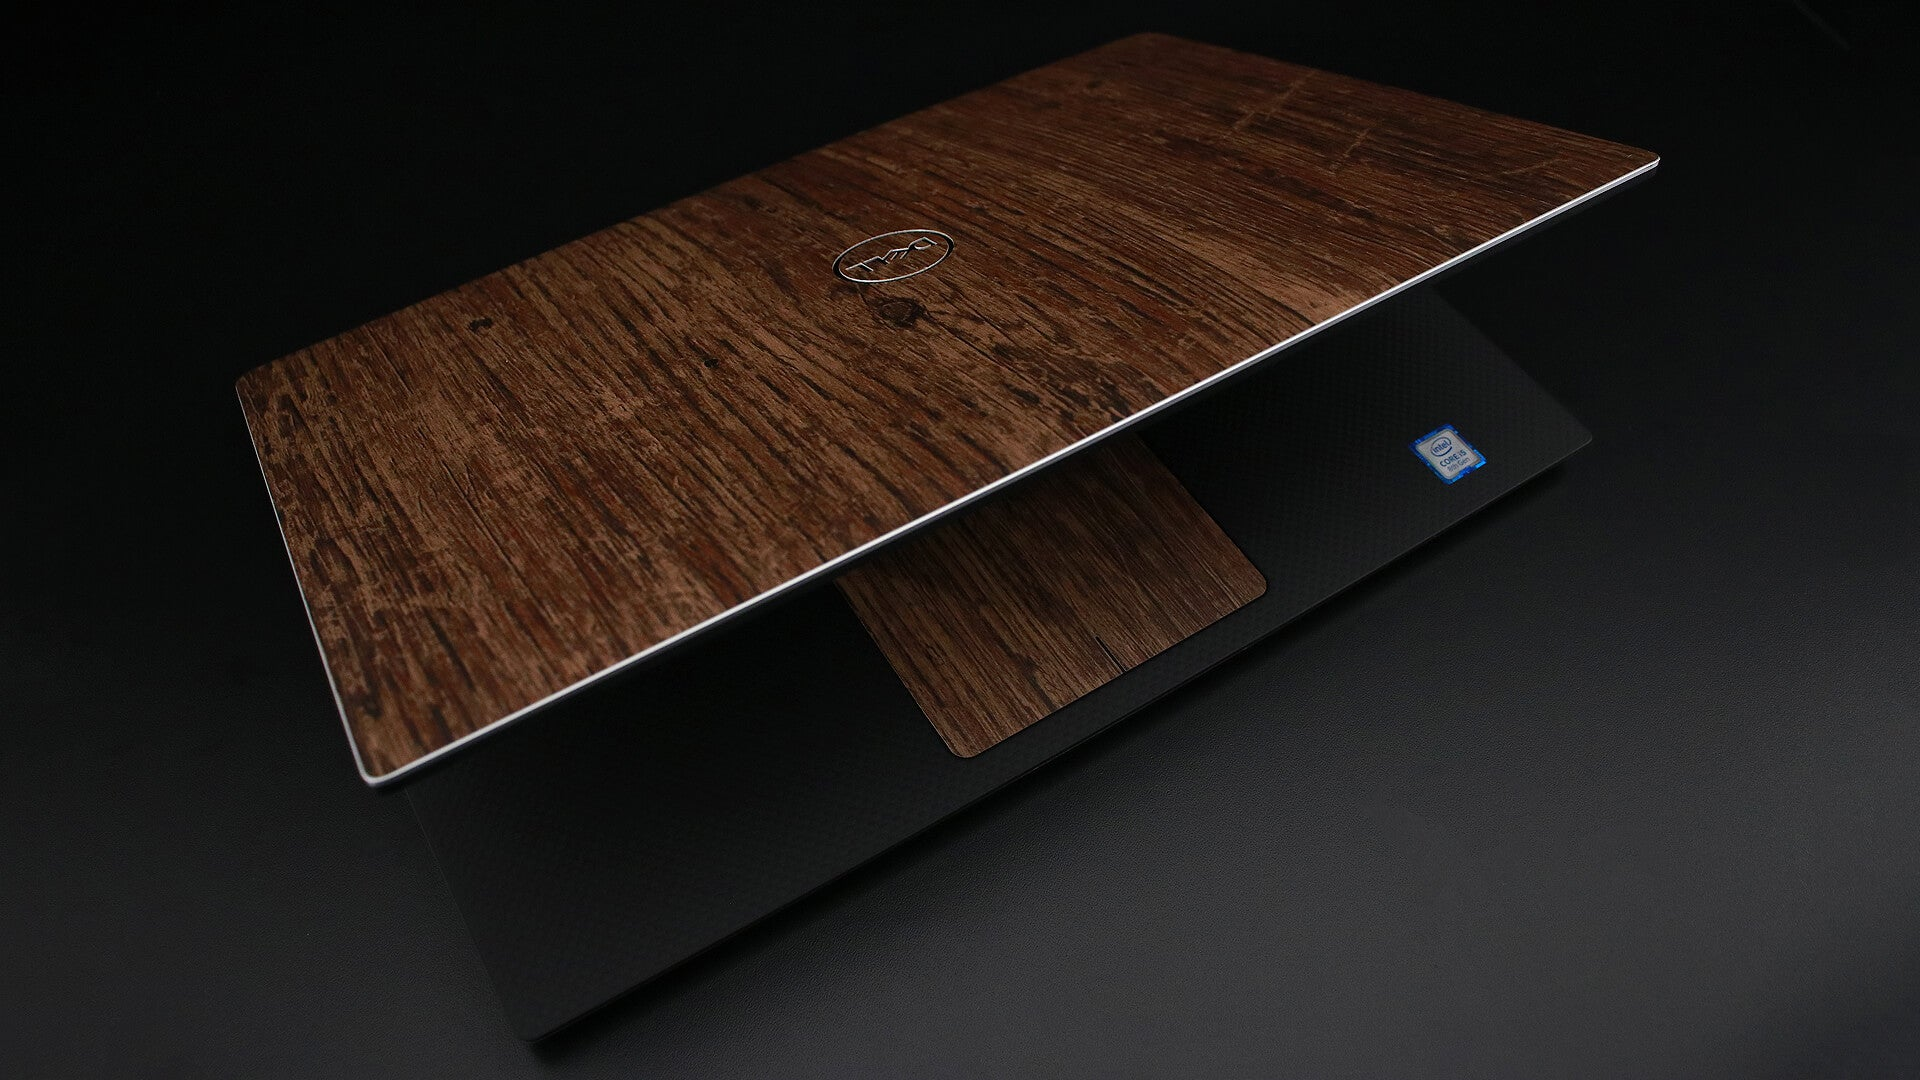 Dell XPS 15 (9750) Aged Oak Skins